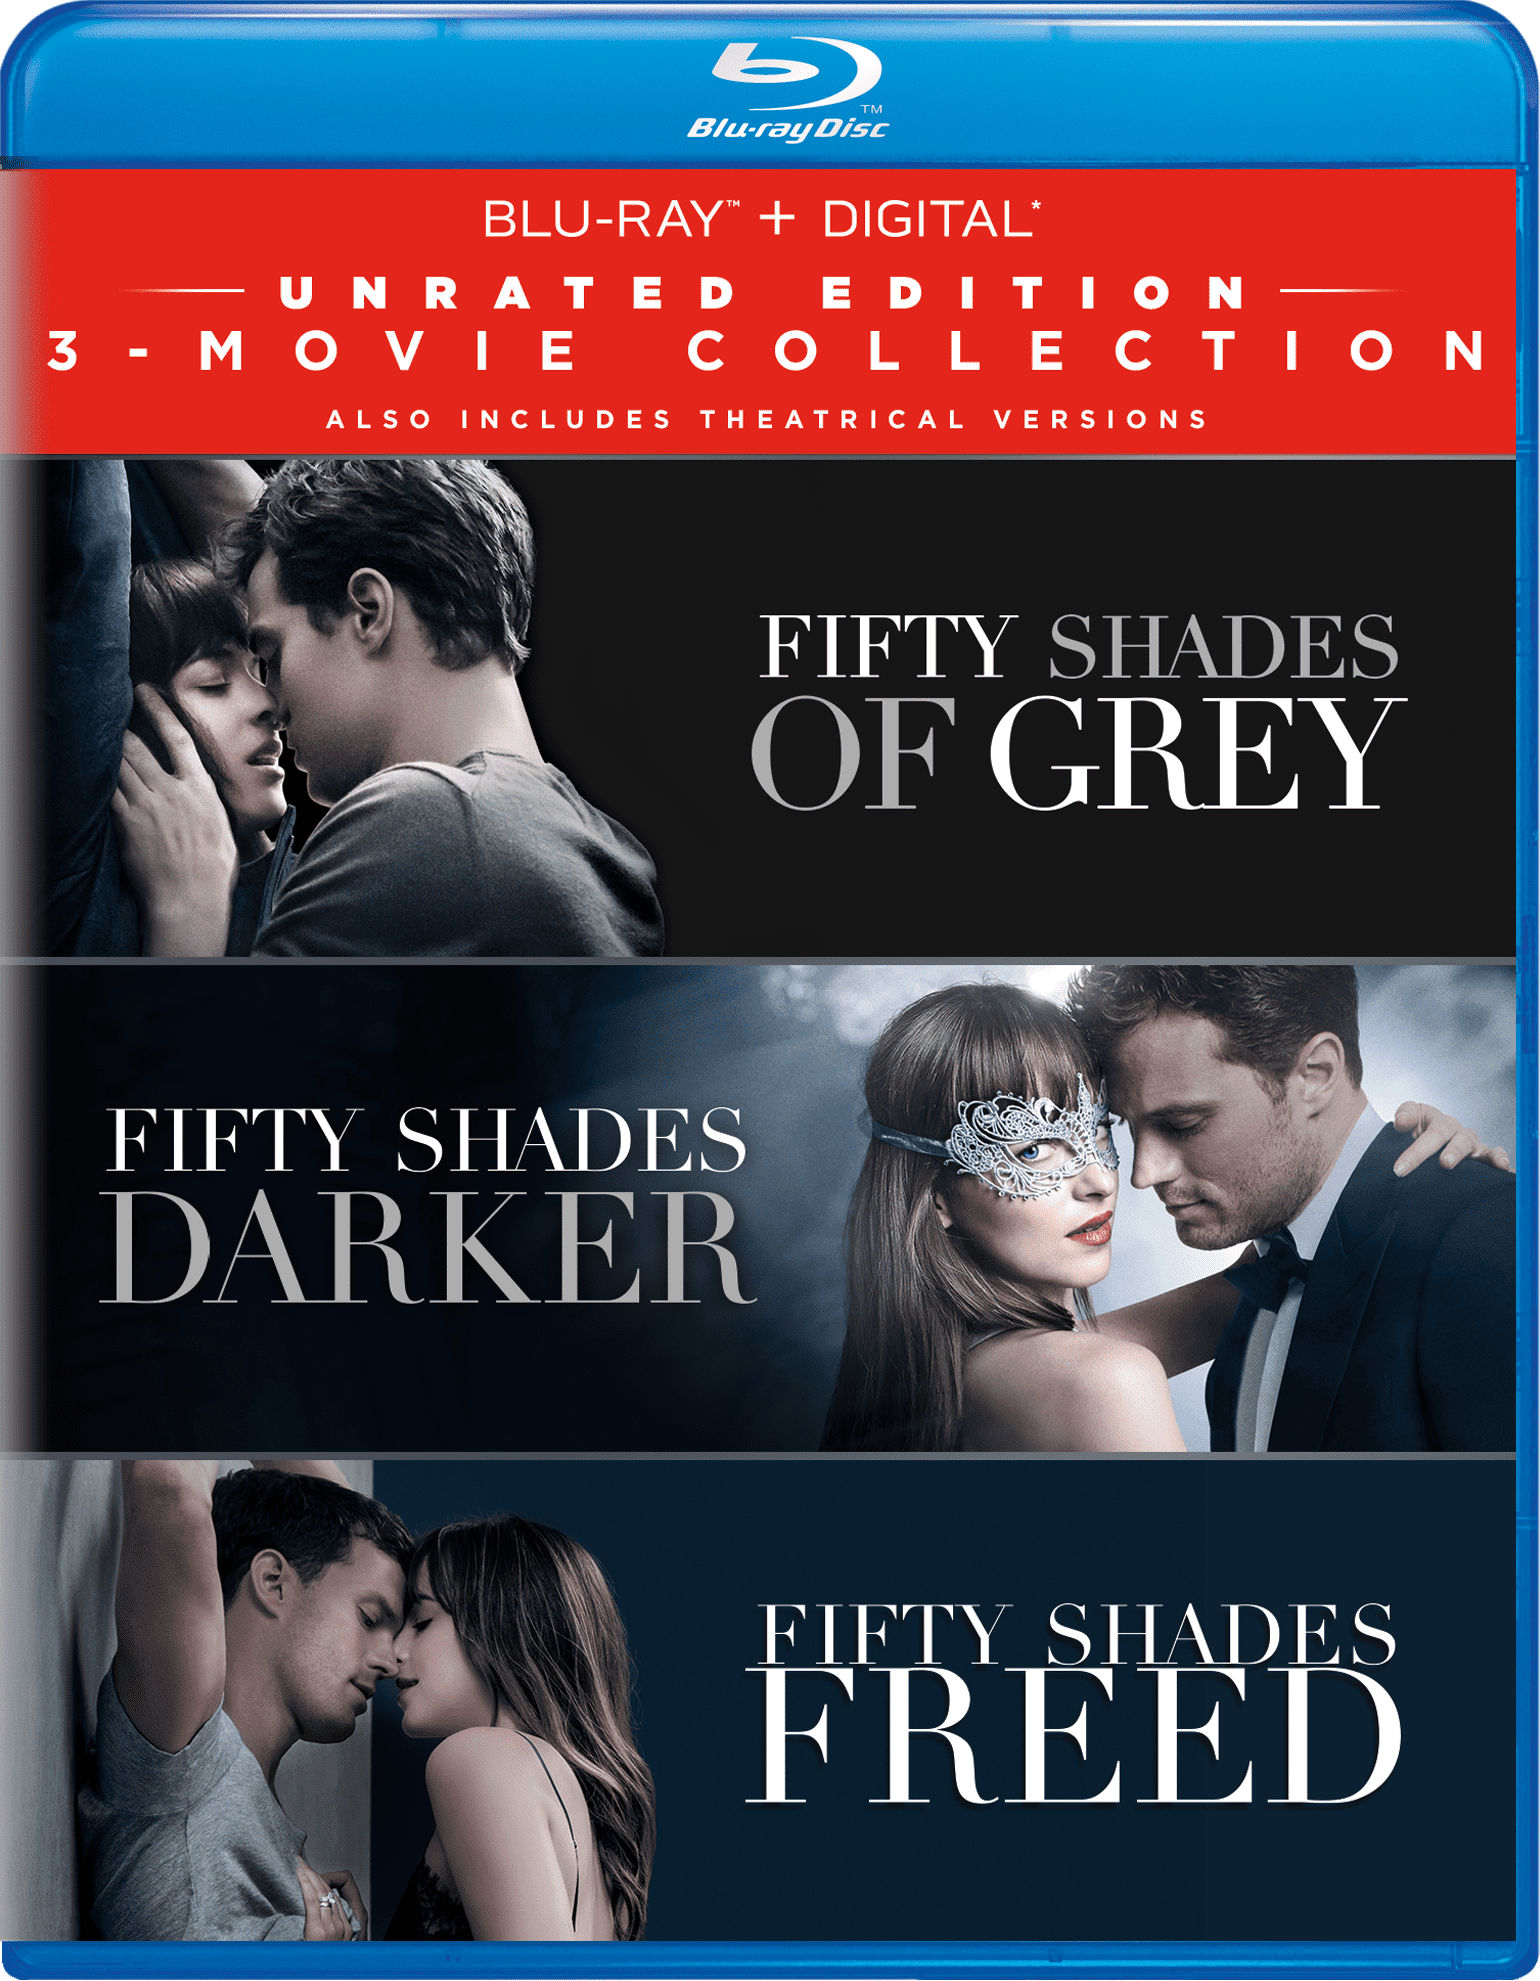 Fifty Shades 3 Movie Collection Unrated Edition Blu Ray Digital